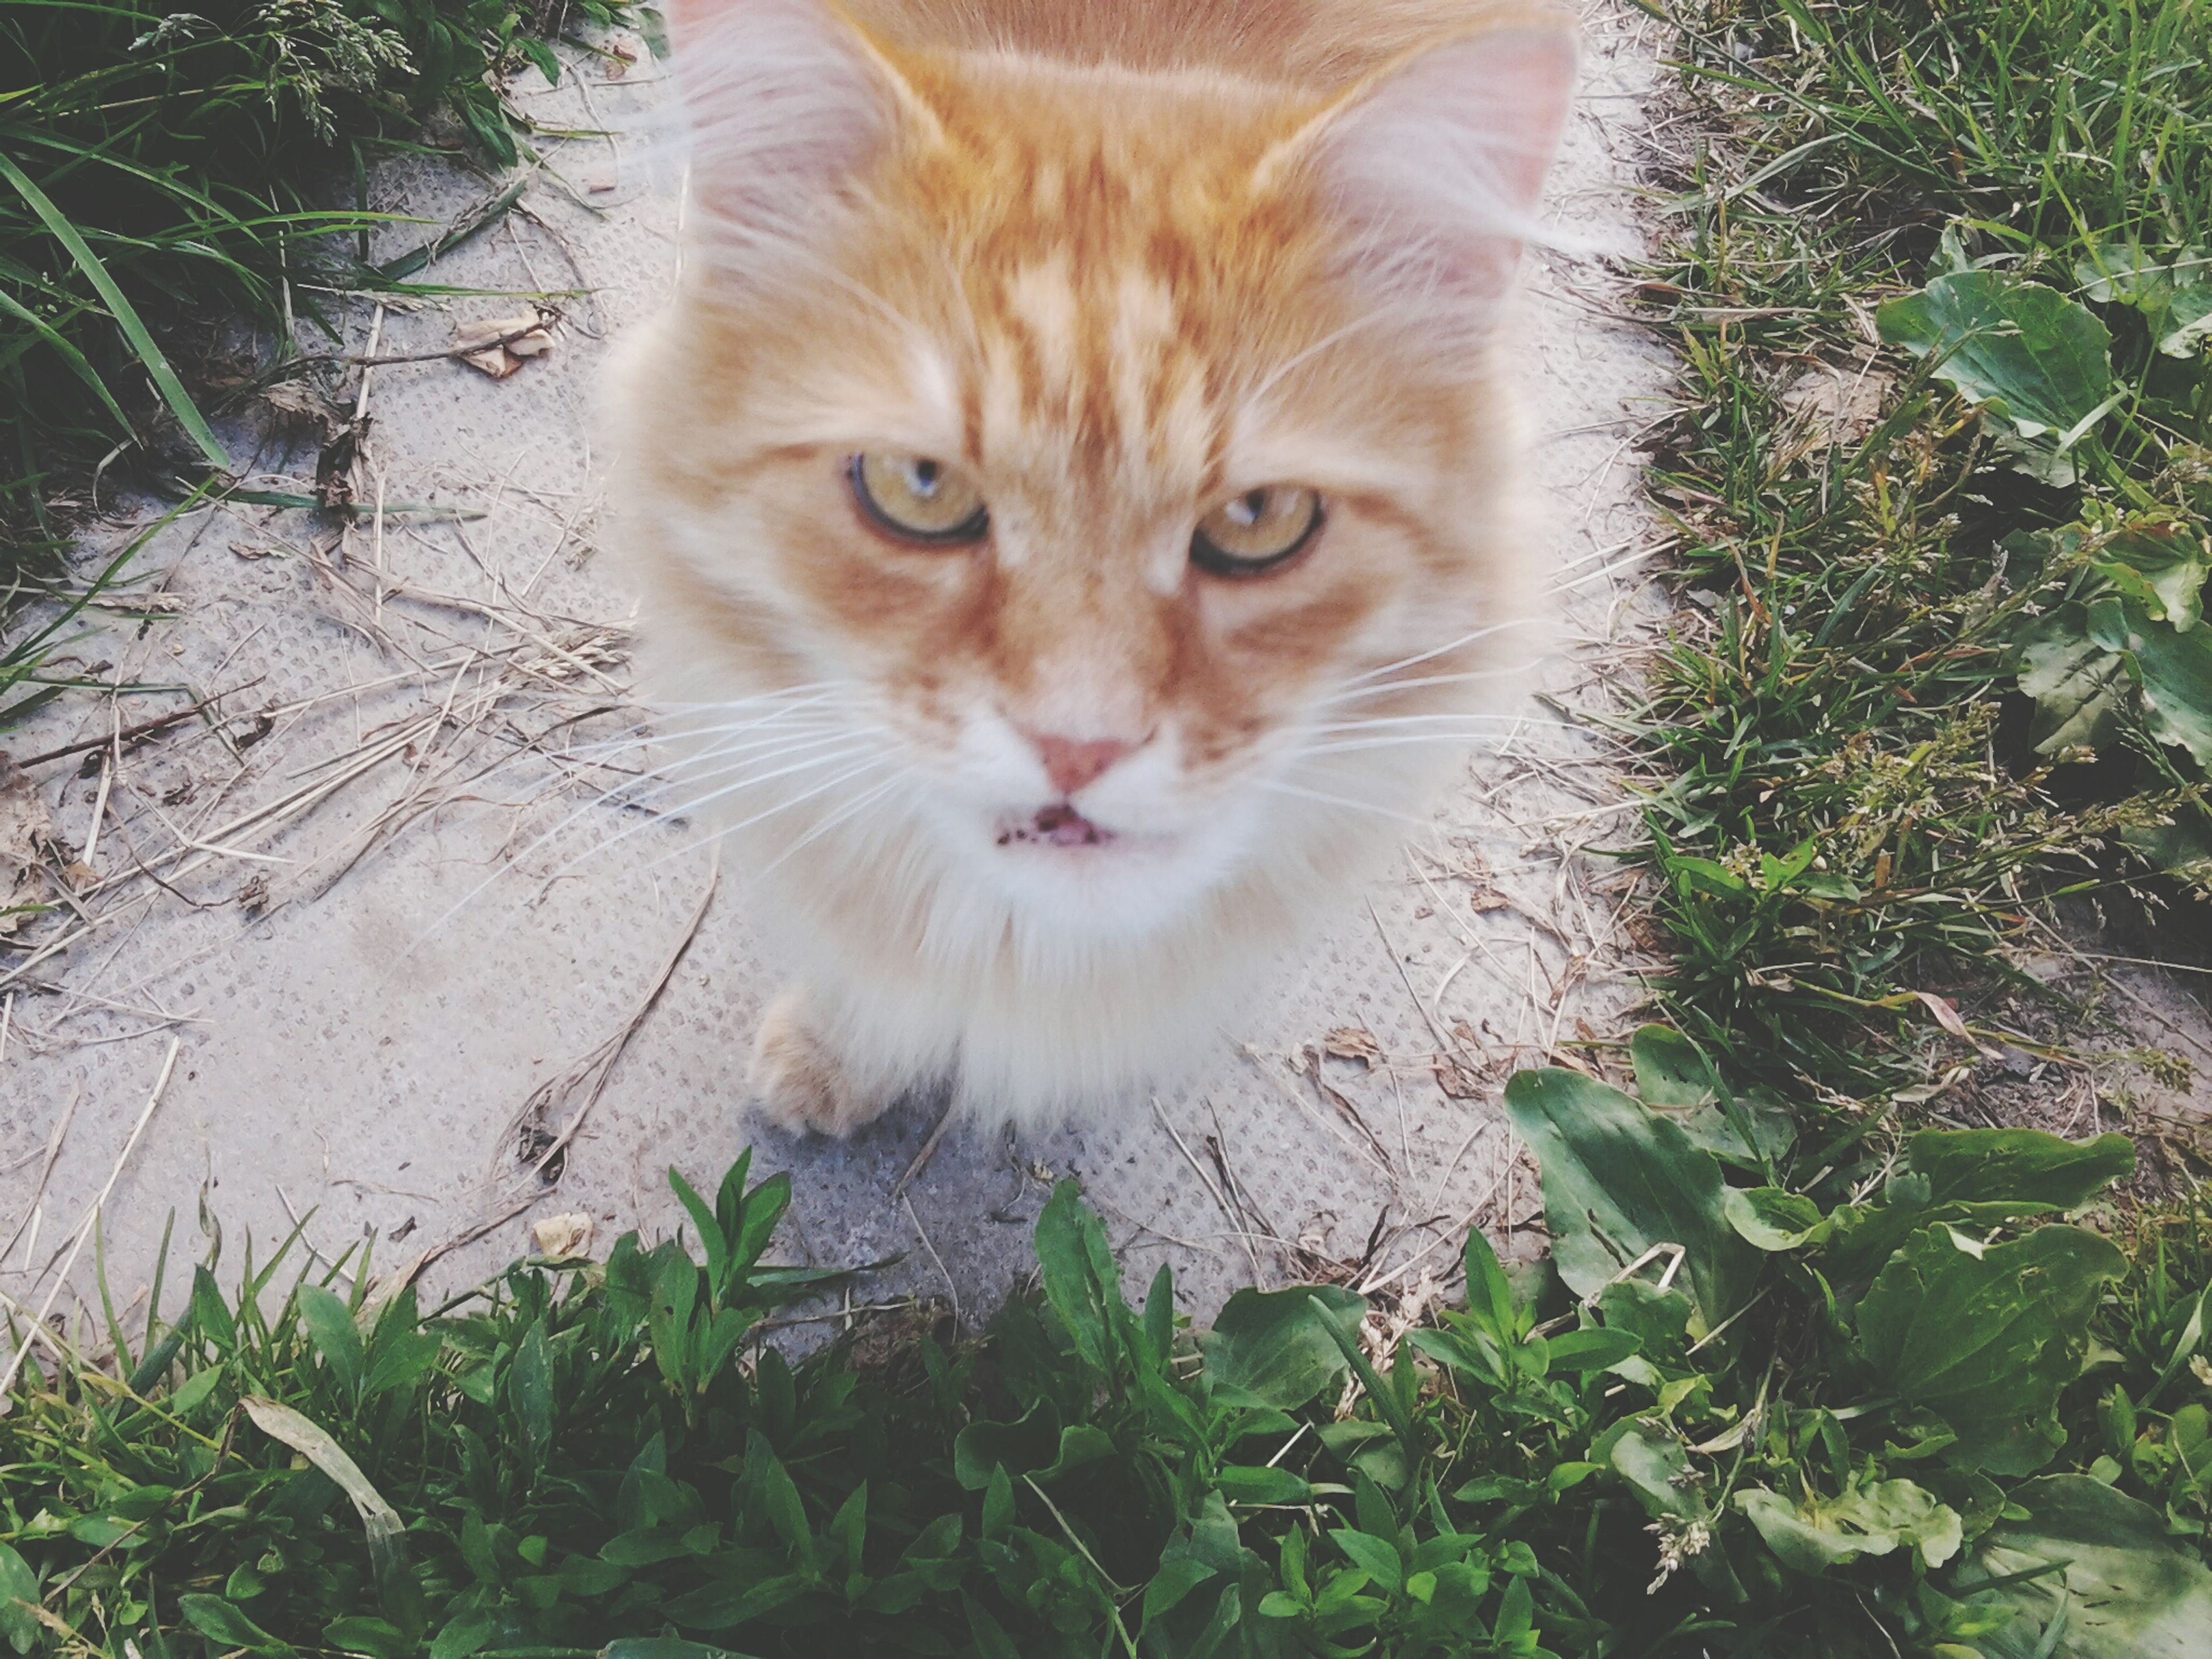 domestic cat, animal themes, one animal, cat, mammal, feline, pets, domestic animals, portrait, looking at camera, whisker, relaxation, plant, sitting, front view, alertness, staring, grass, nature, close-up